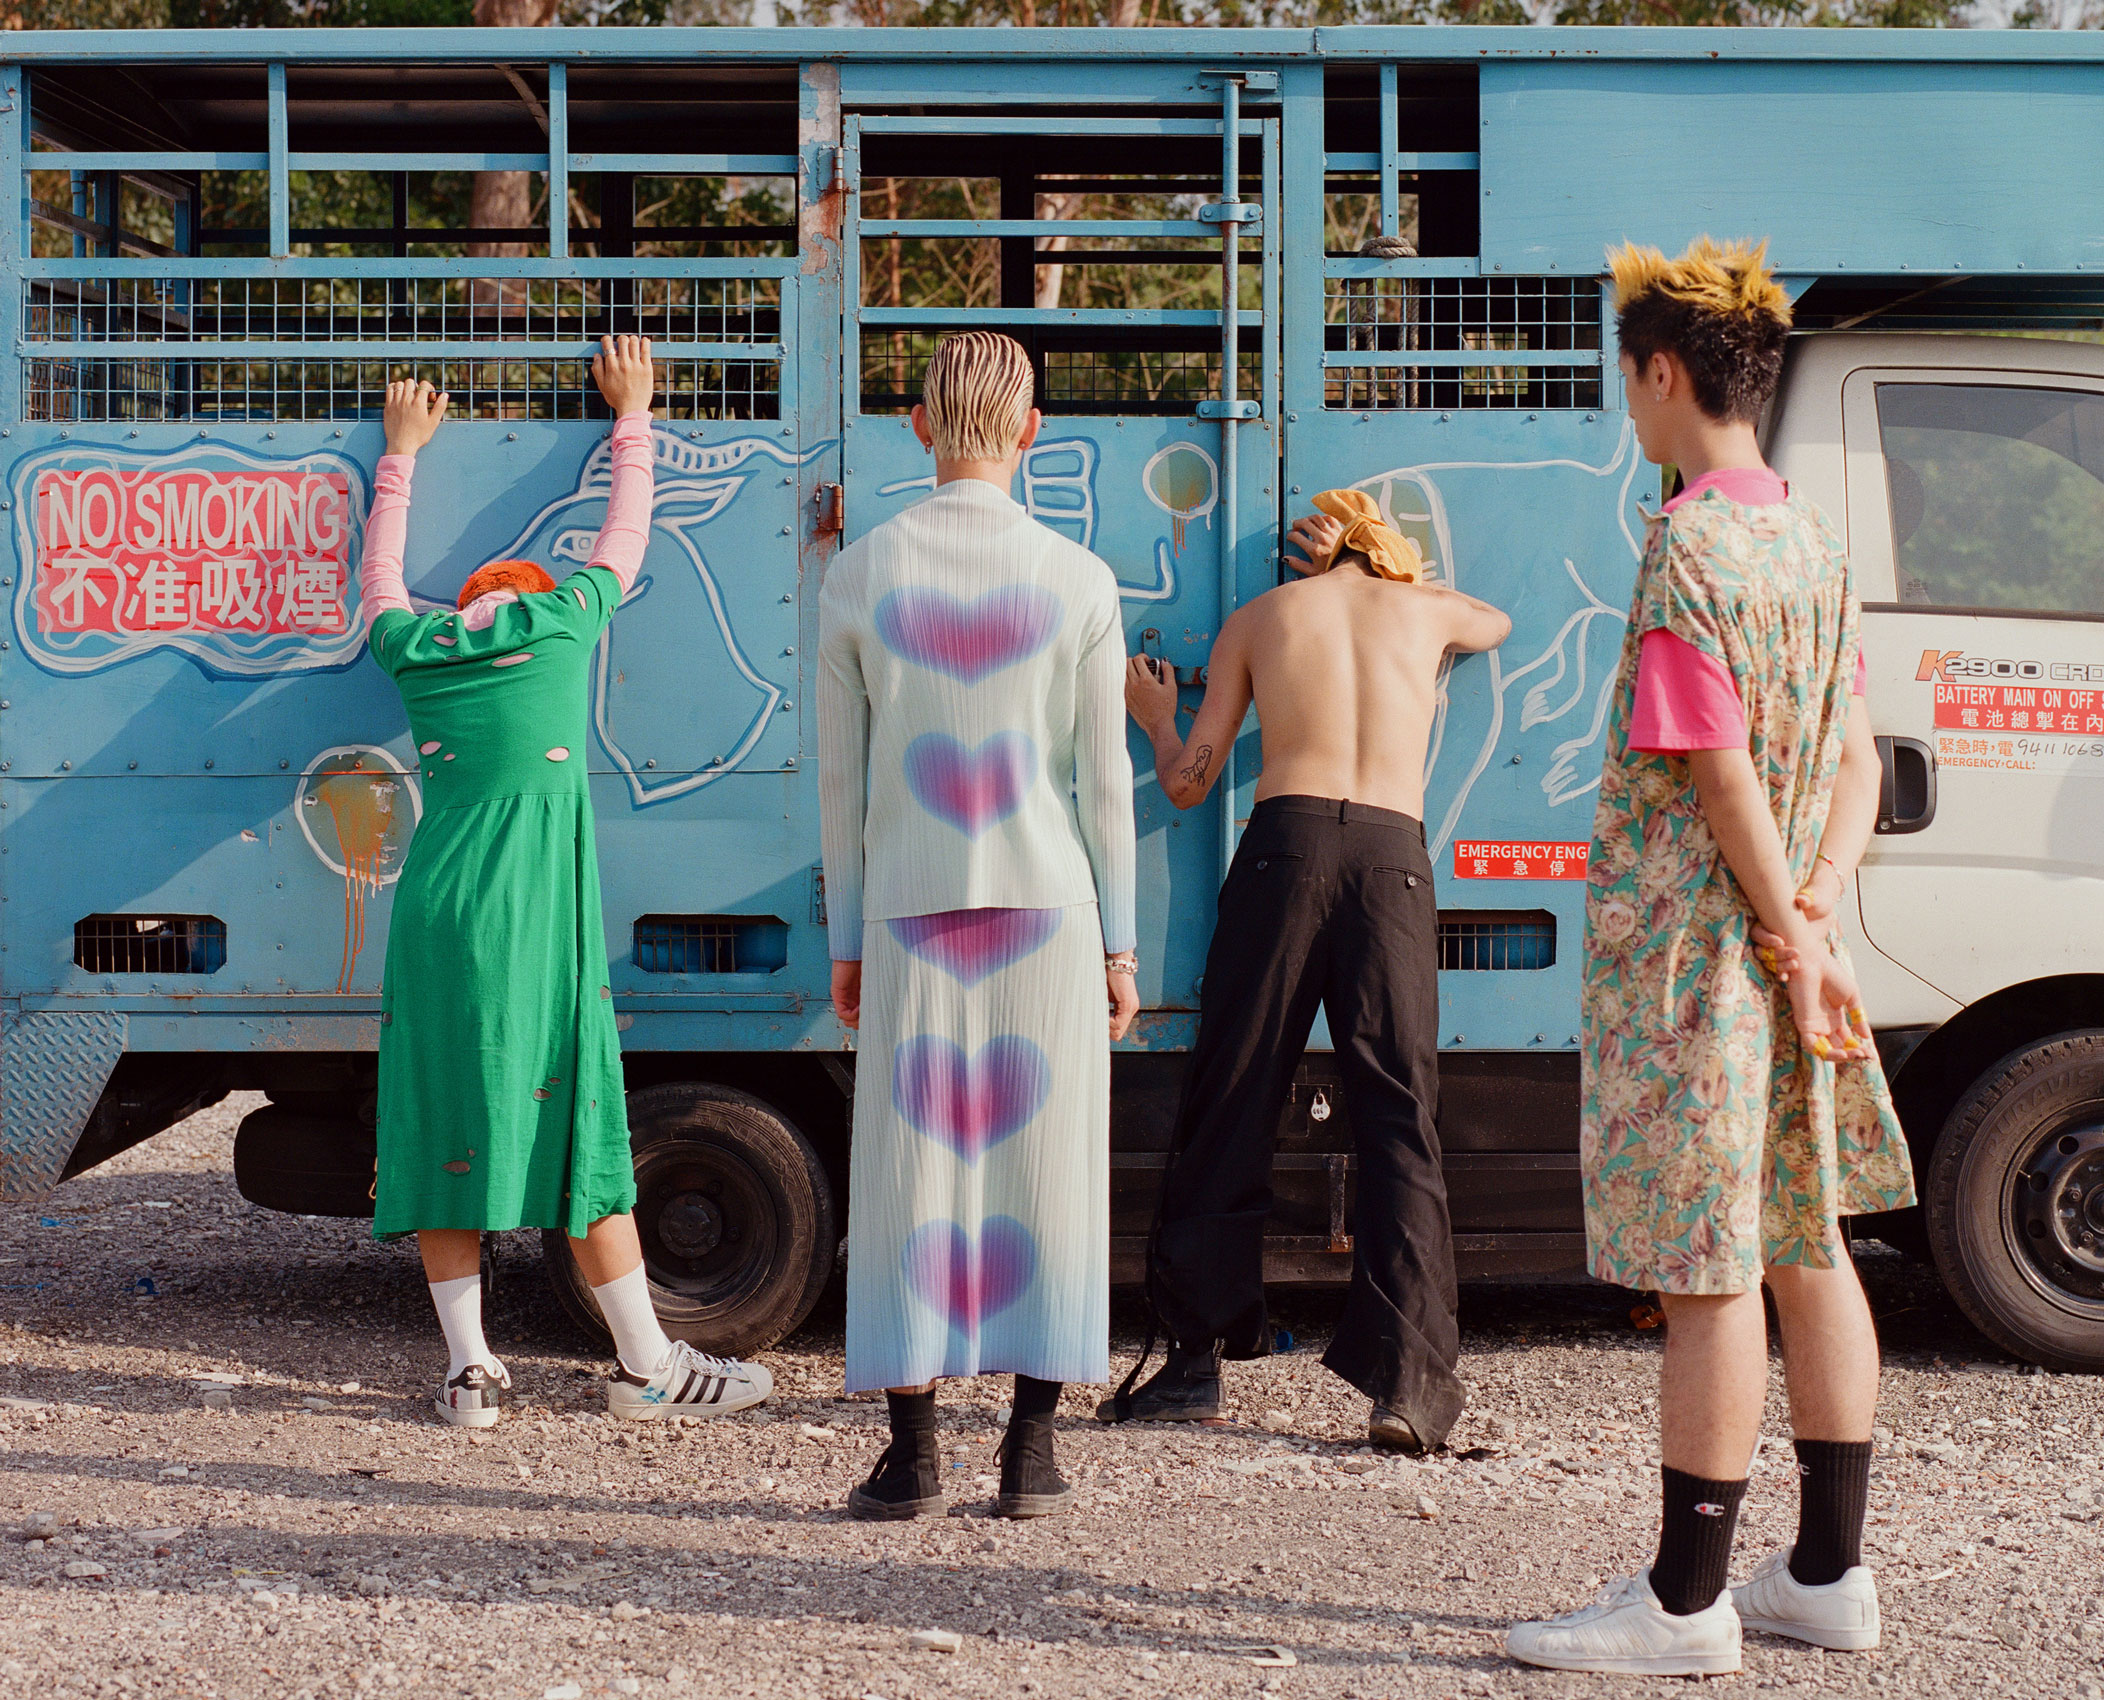 four boys wearing dresses stand with their backs to the camera, in front of an old pale blue truck